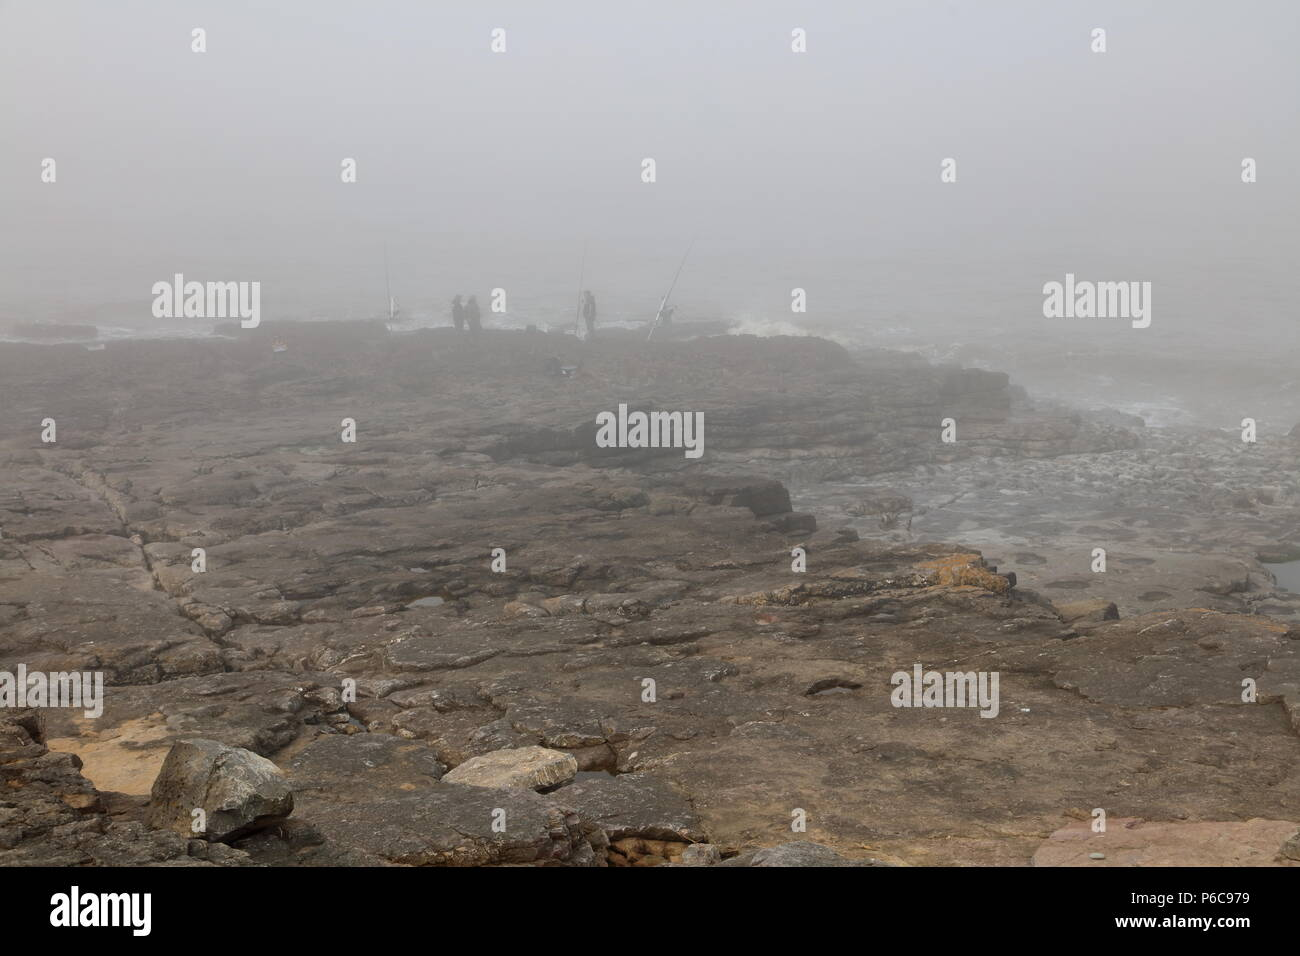 A group of fishermen in the distance on a very misty day with dense sea fog rolling in from the sea on the rocks at Ogmore by sea.. - Stock Image